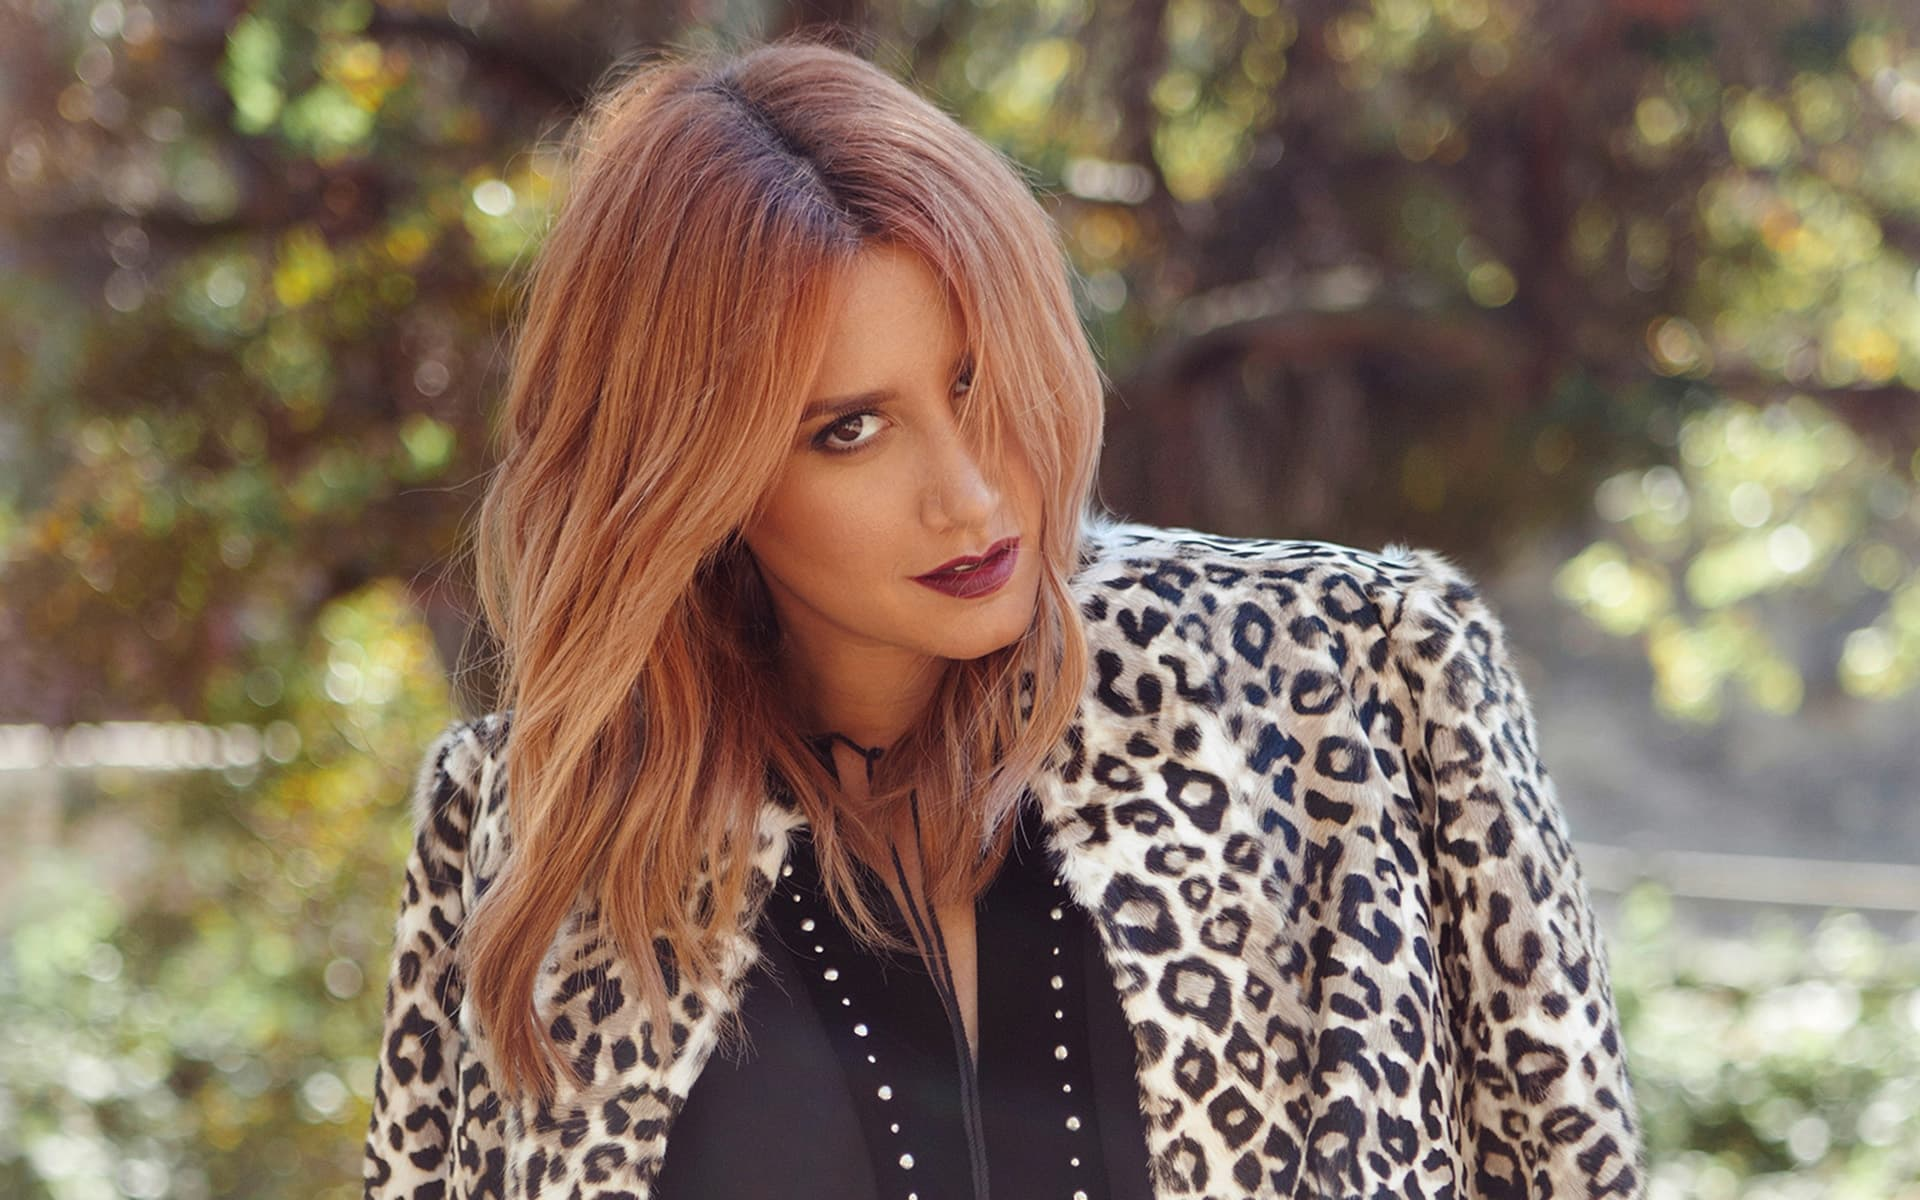 Ashley Tisdale Wallpapers HD Images Photos Pictures for ... | 1920 x 1200 jpeg 212kB